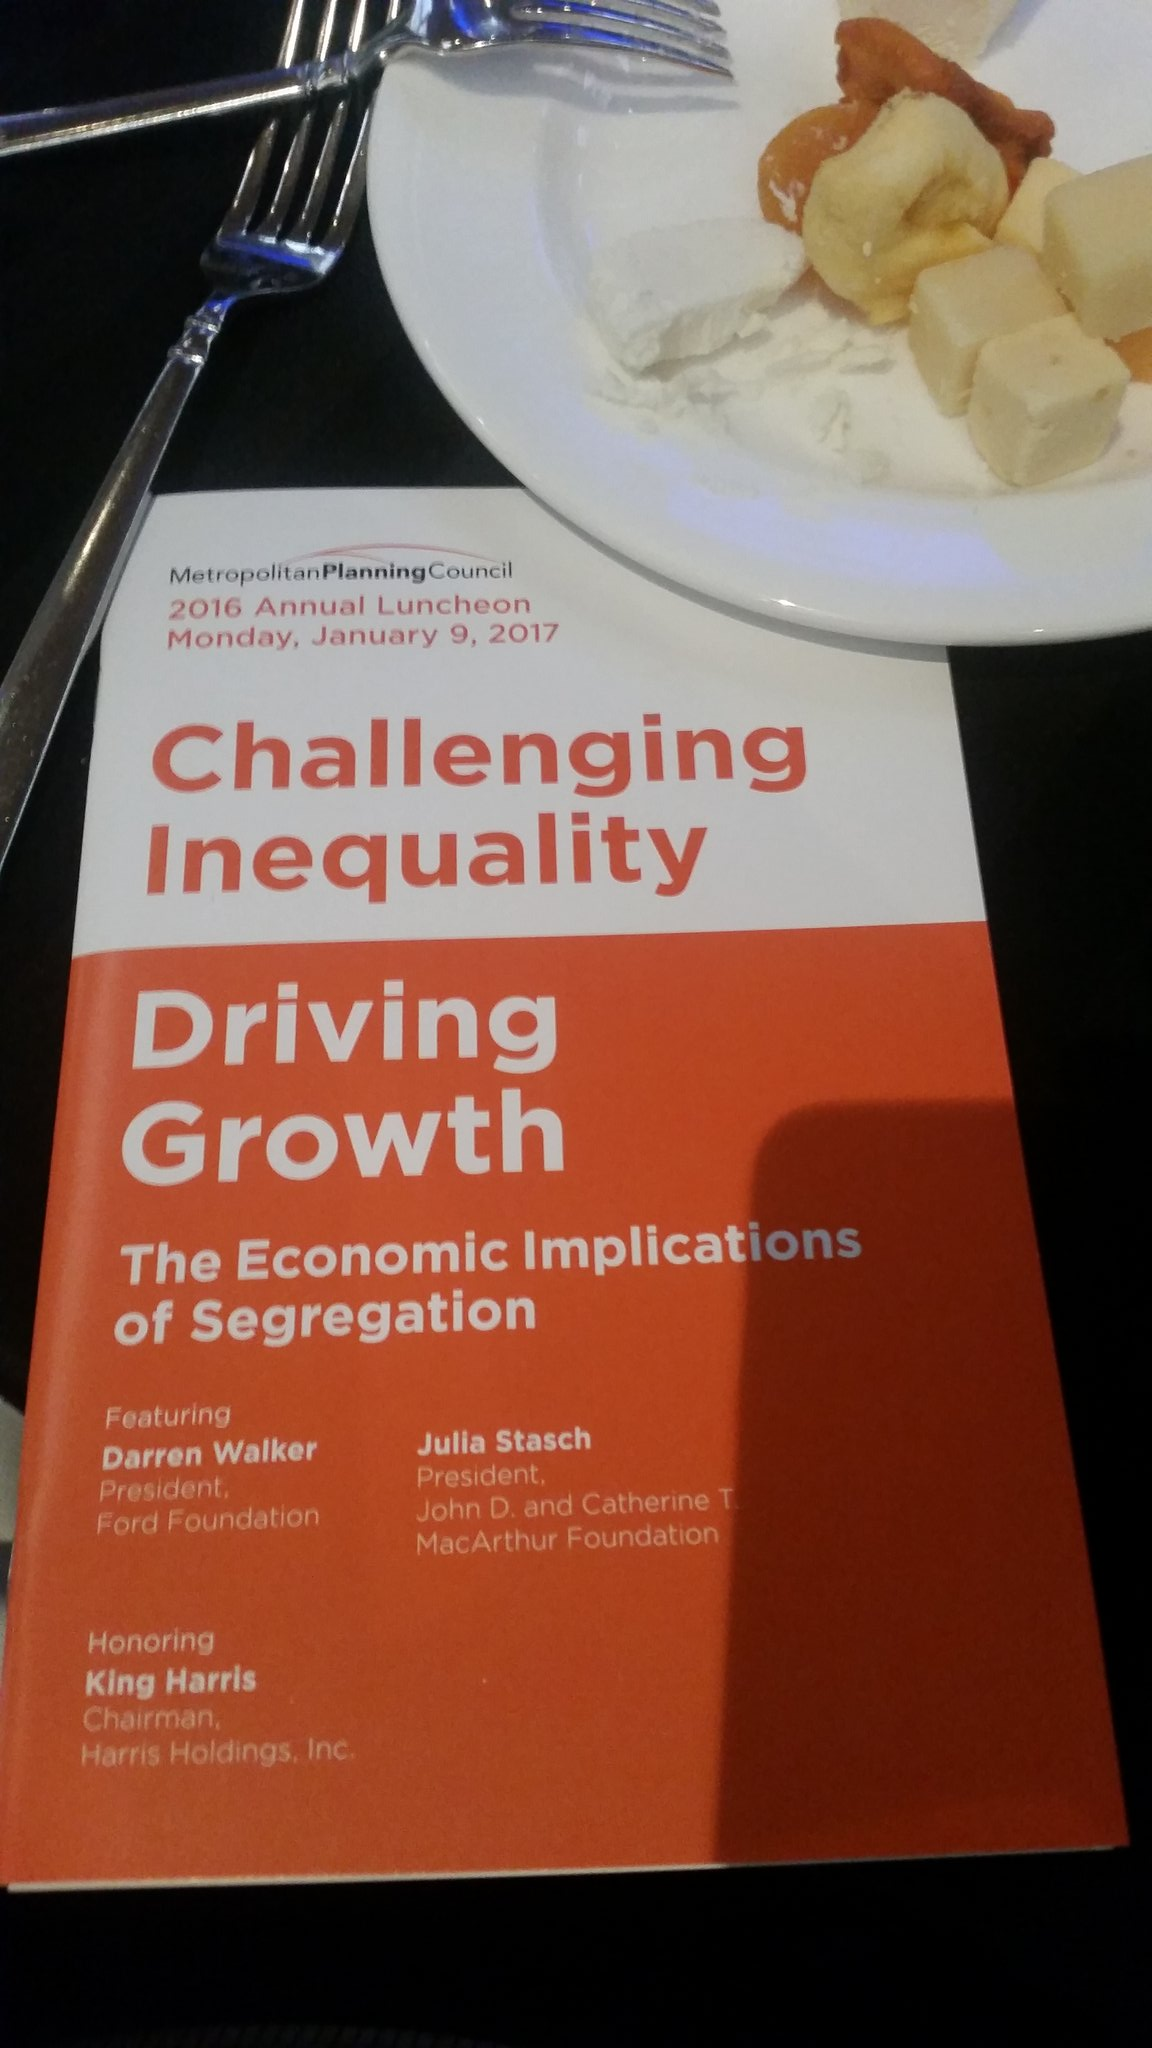 @ChiUrbanLeague  maybe a great time to partner. Both of you seek to solve segregation  #mpcluncheon https://t.co/1nDWprioio